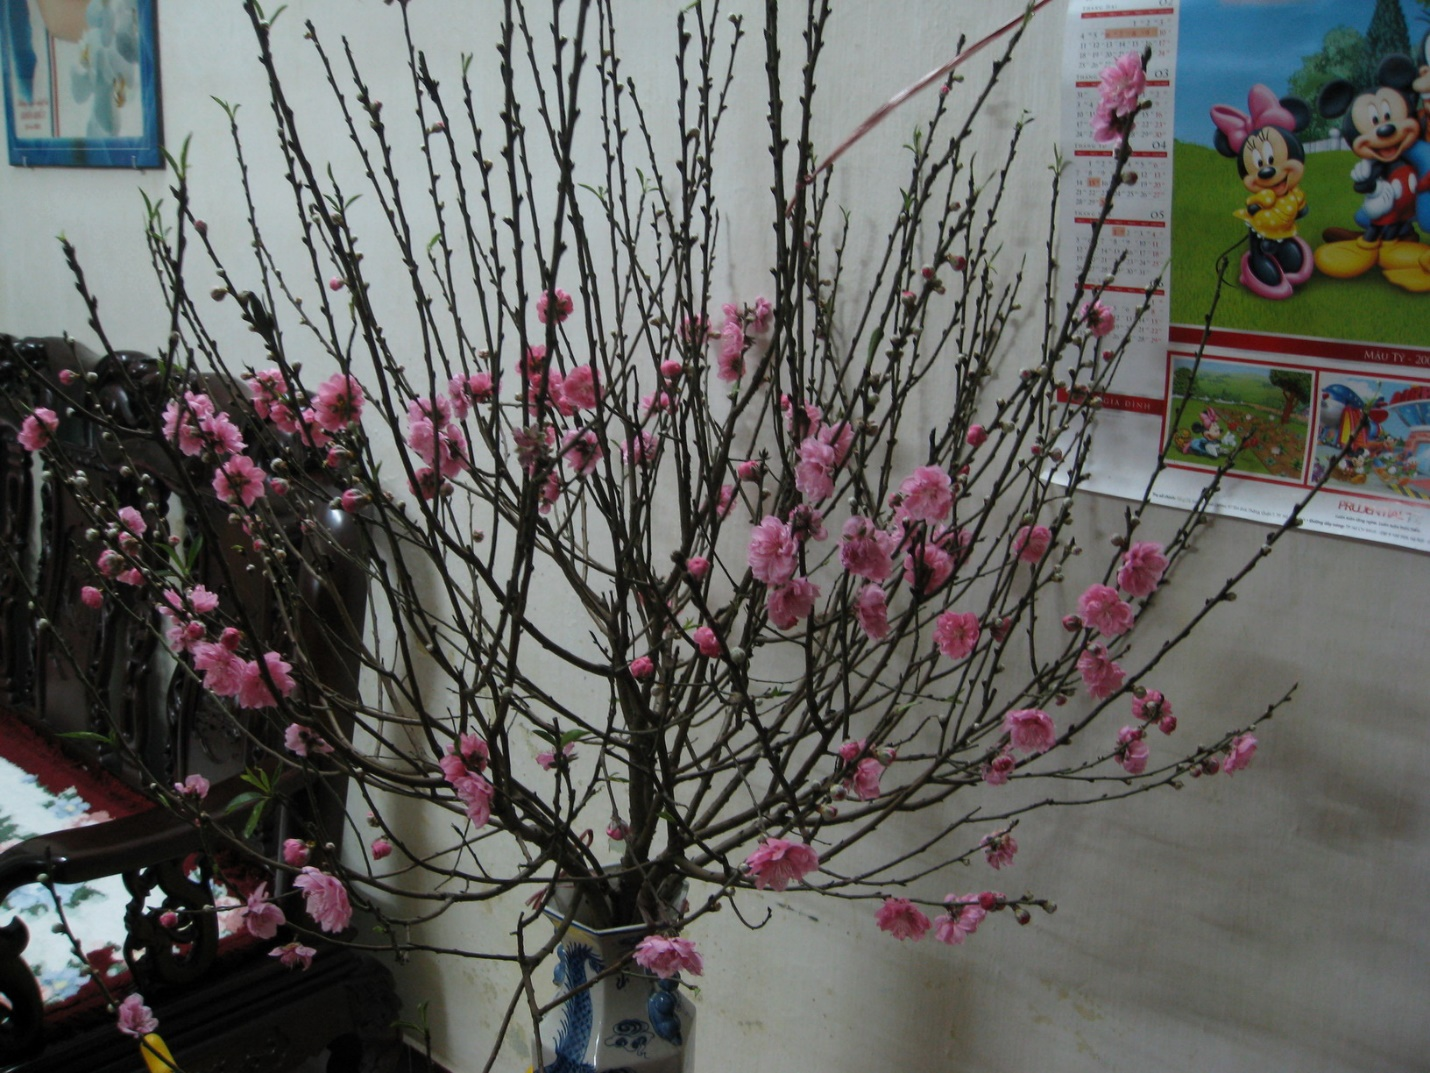 Peach blossom is put in the living room at Tet holiday in Vietnam